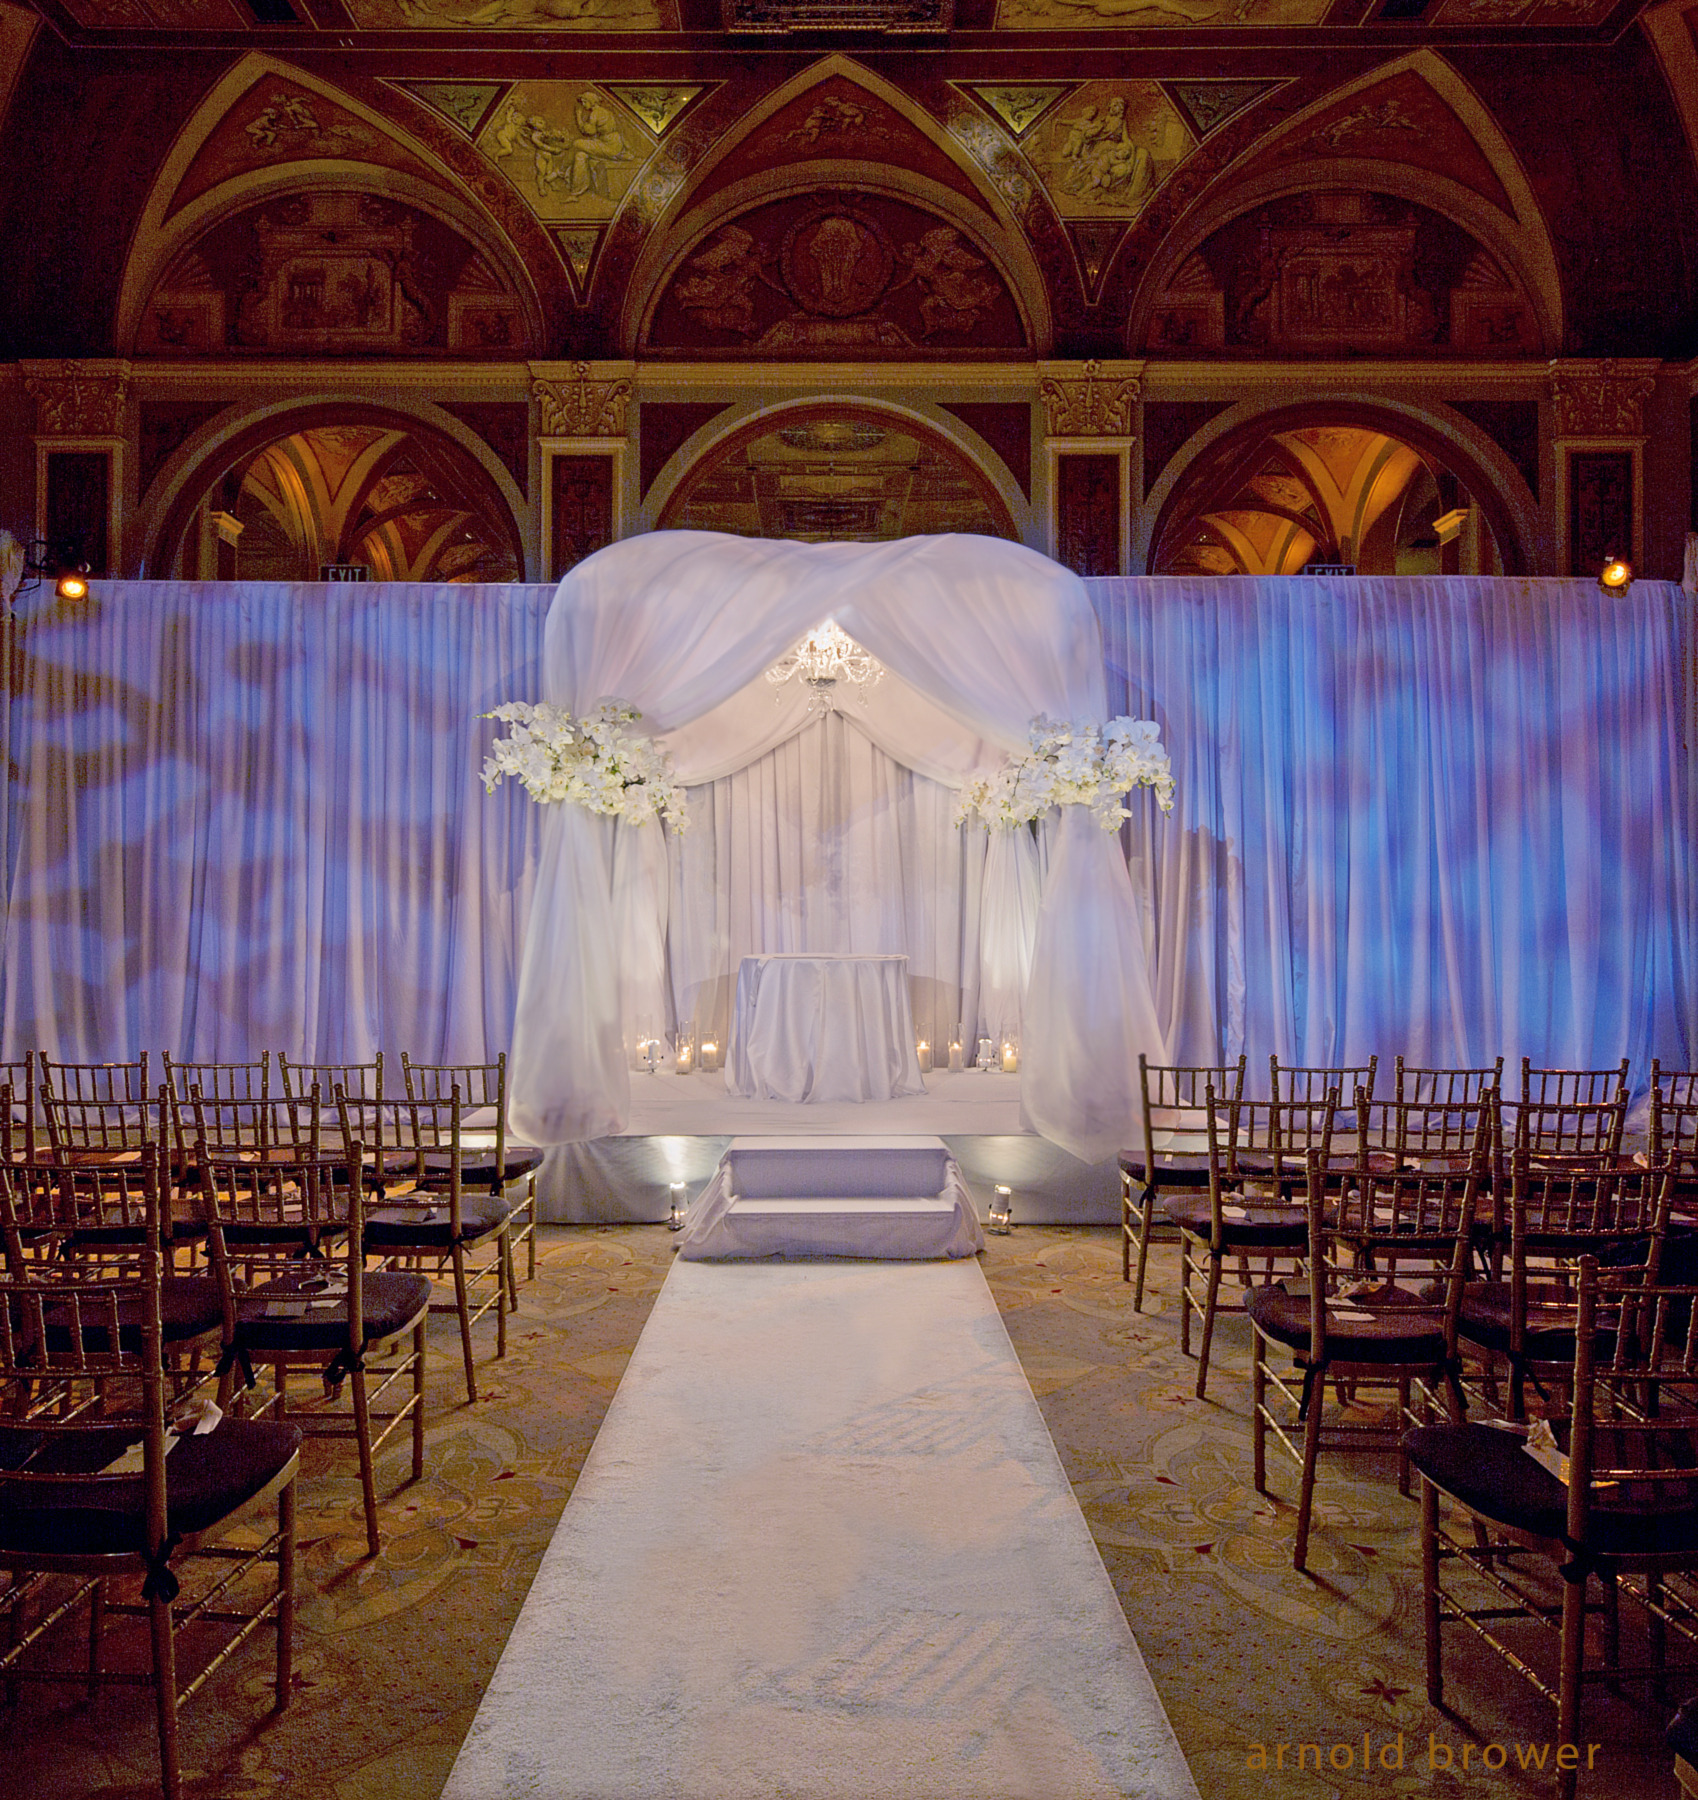 The Chuppah design at The Plaza Hotel